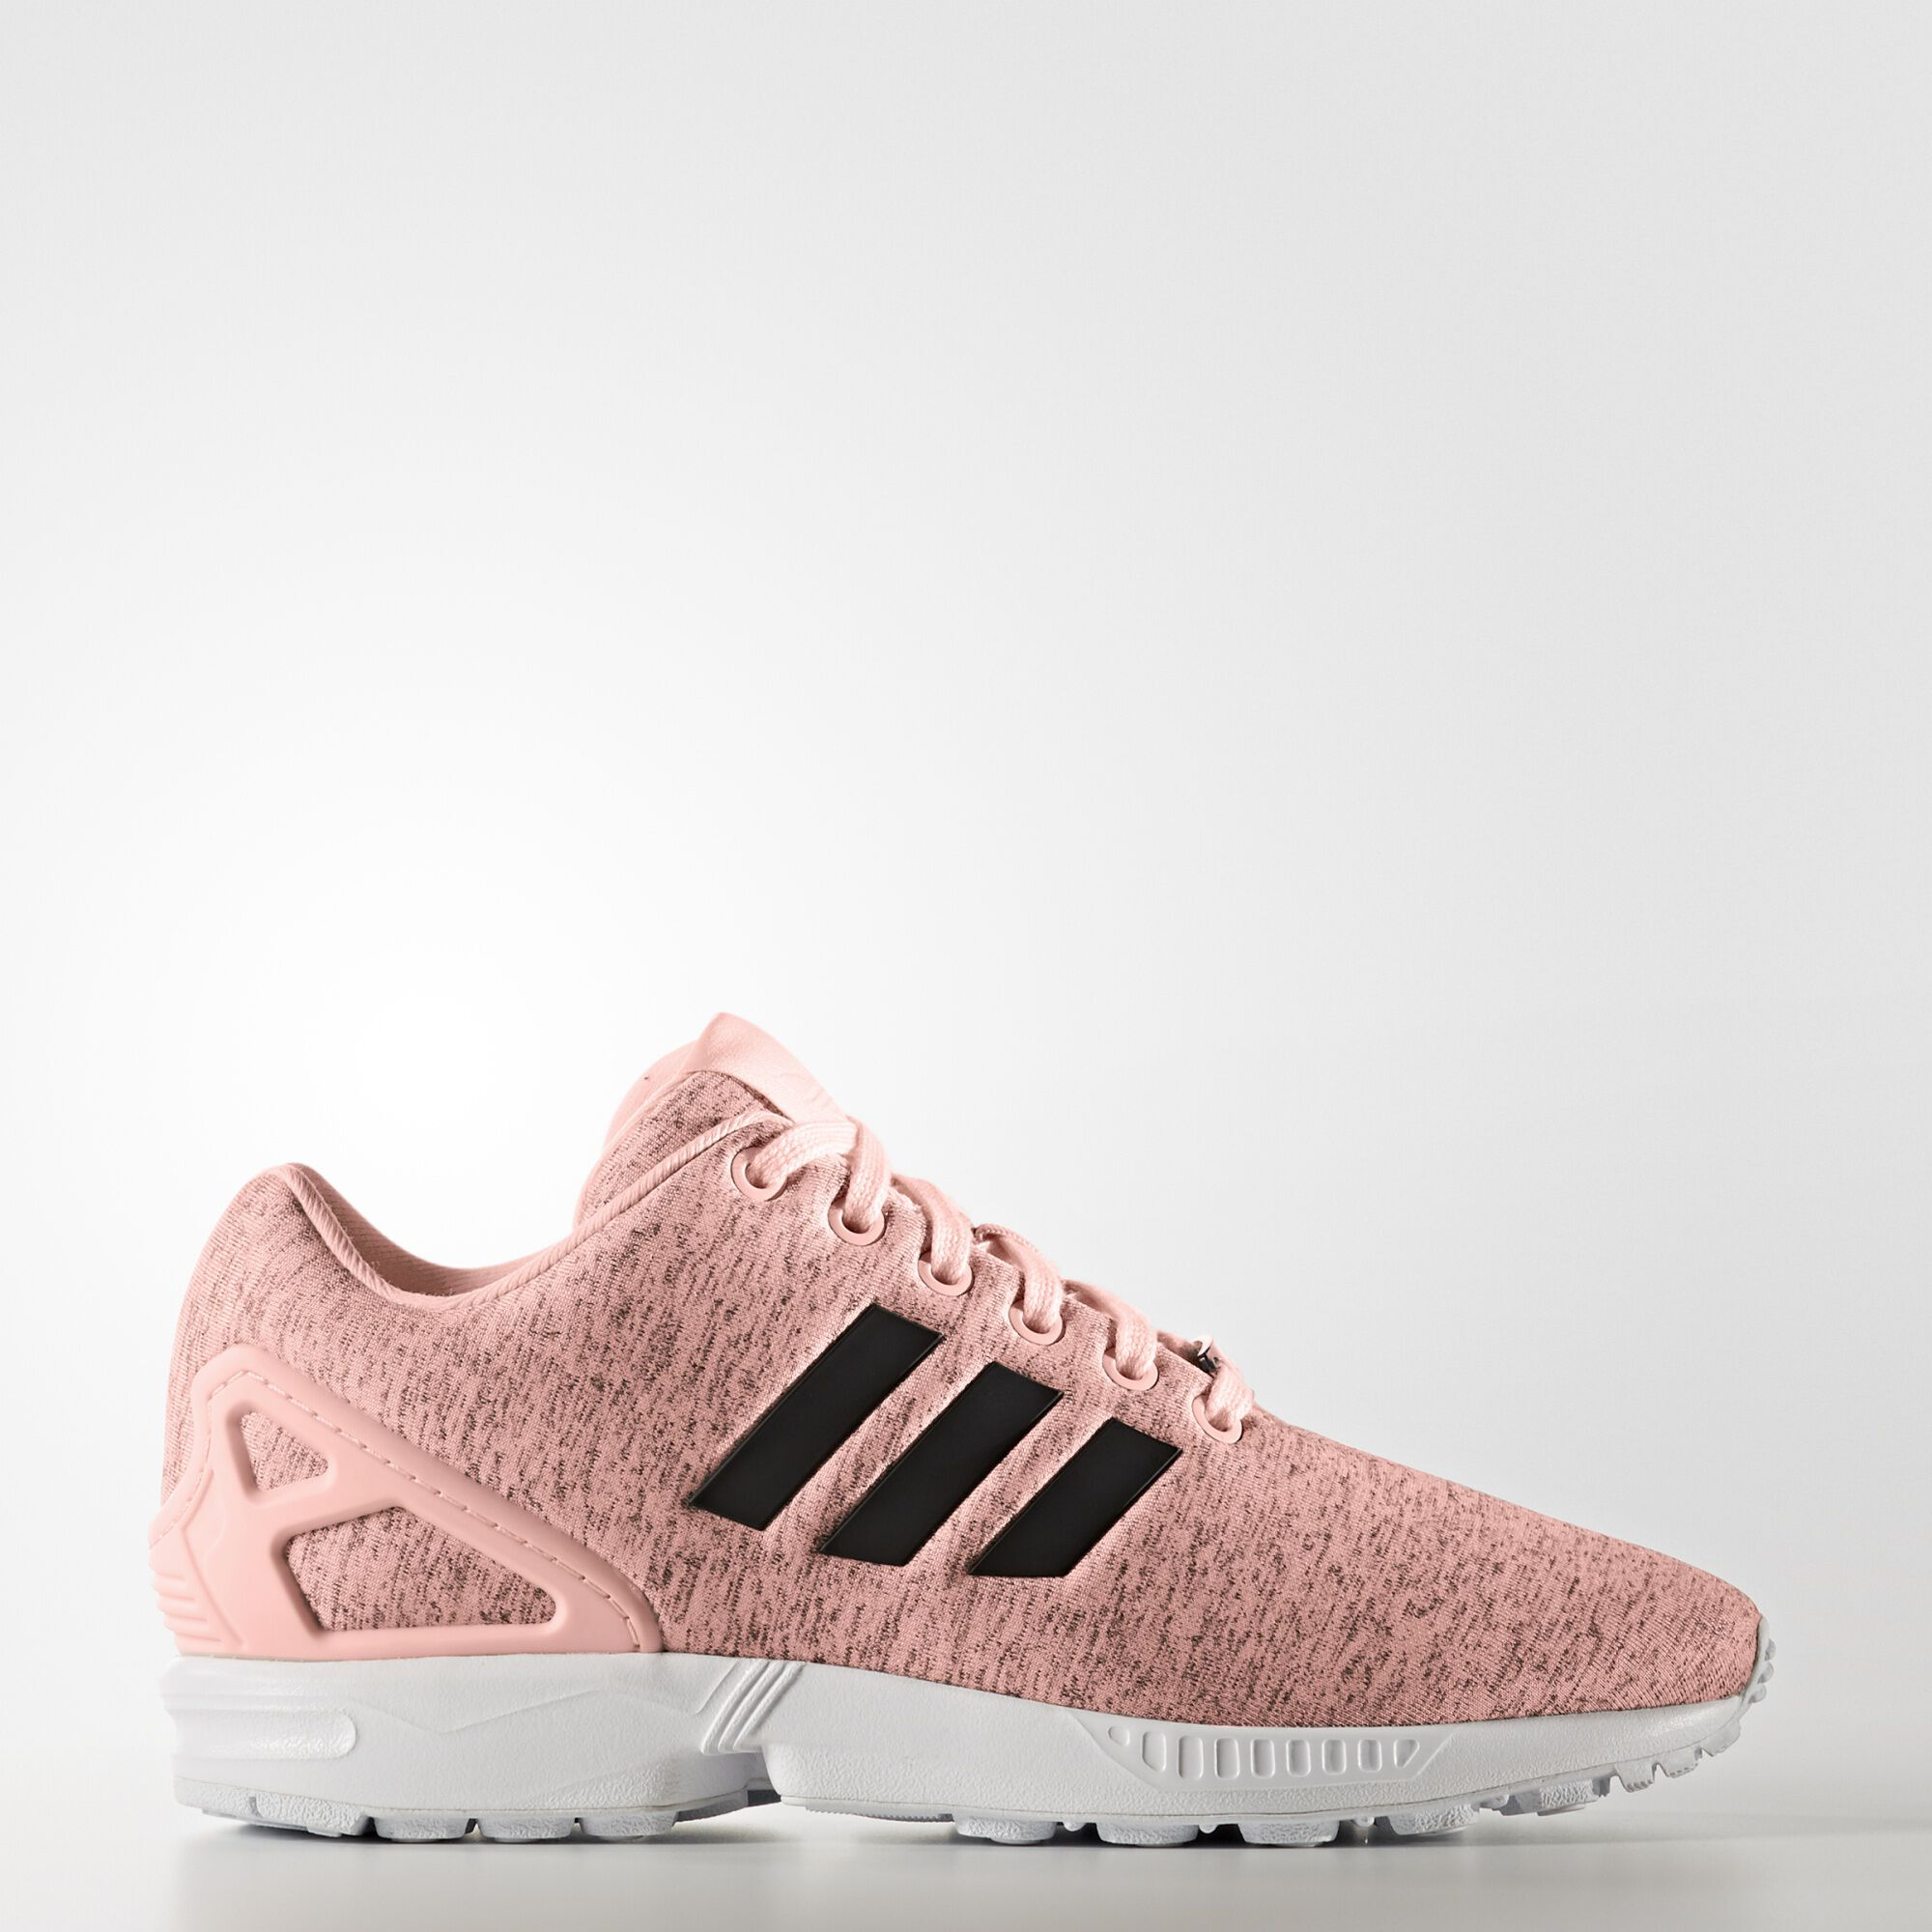 Adidas Flux White And Pink